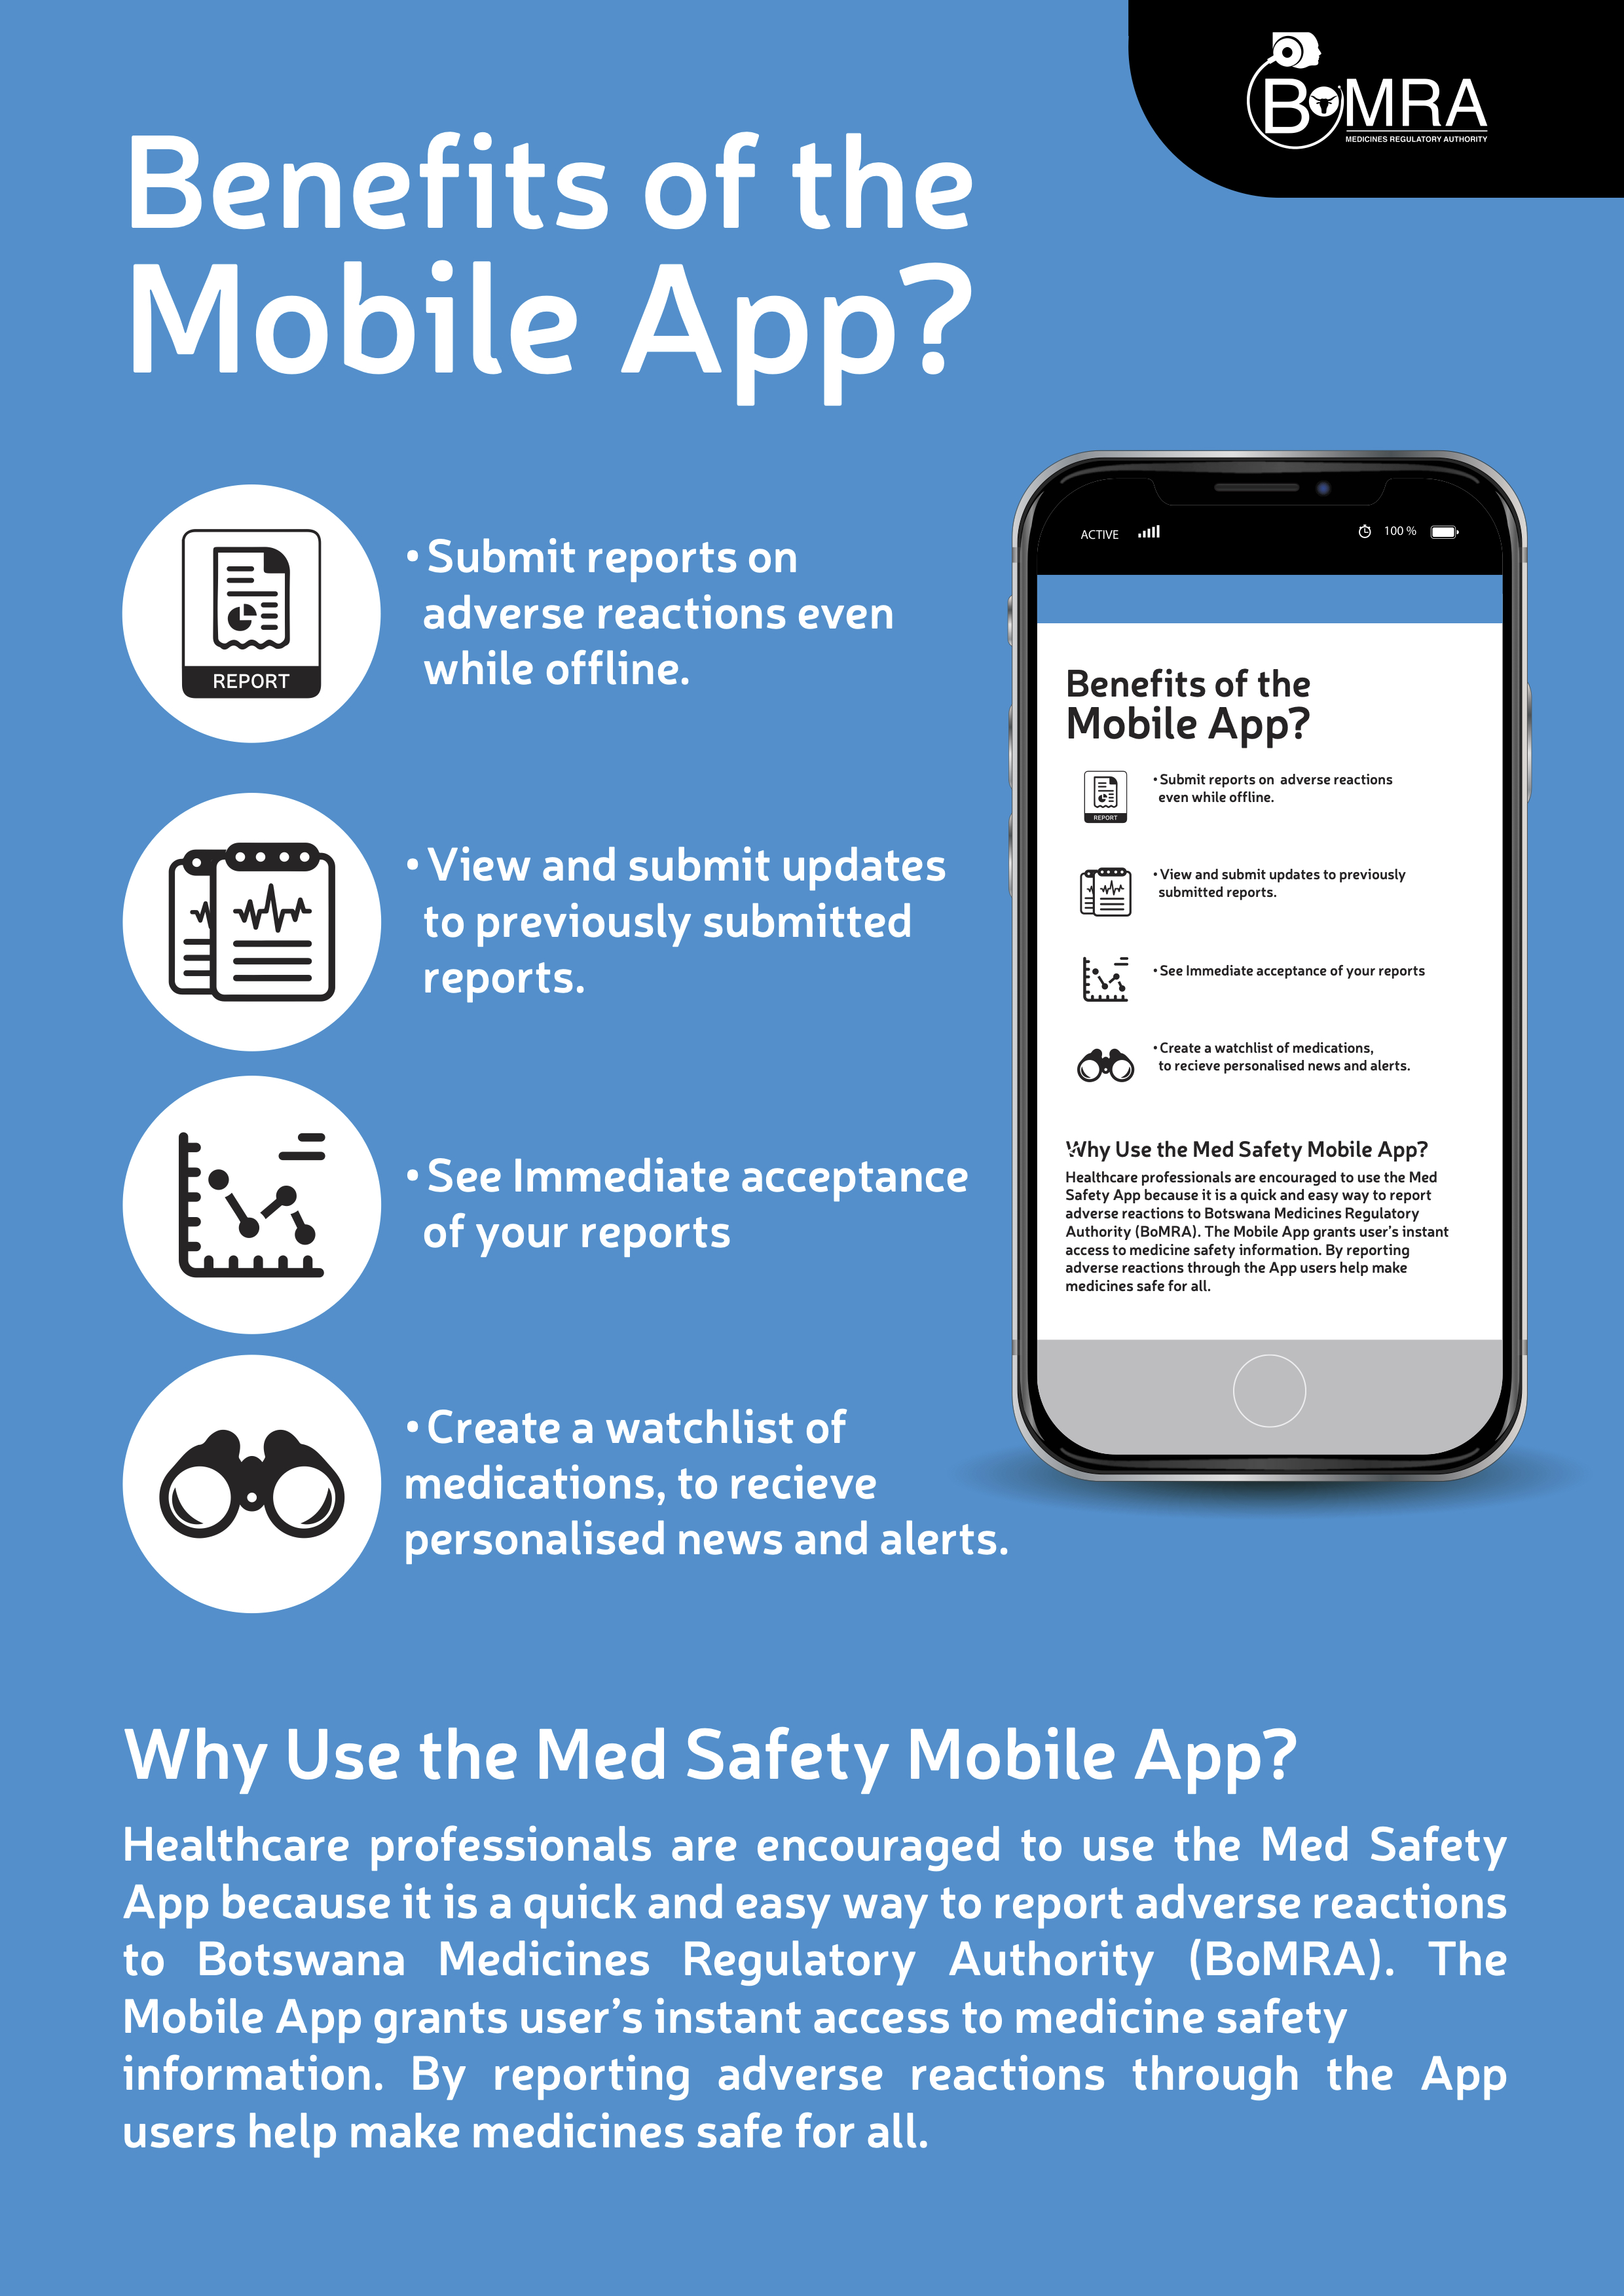 The Med Safety App provides a simple interface for submitting and viewing reports.